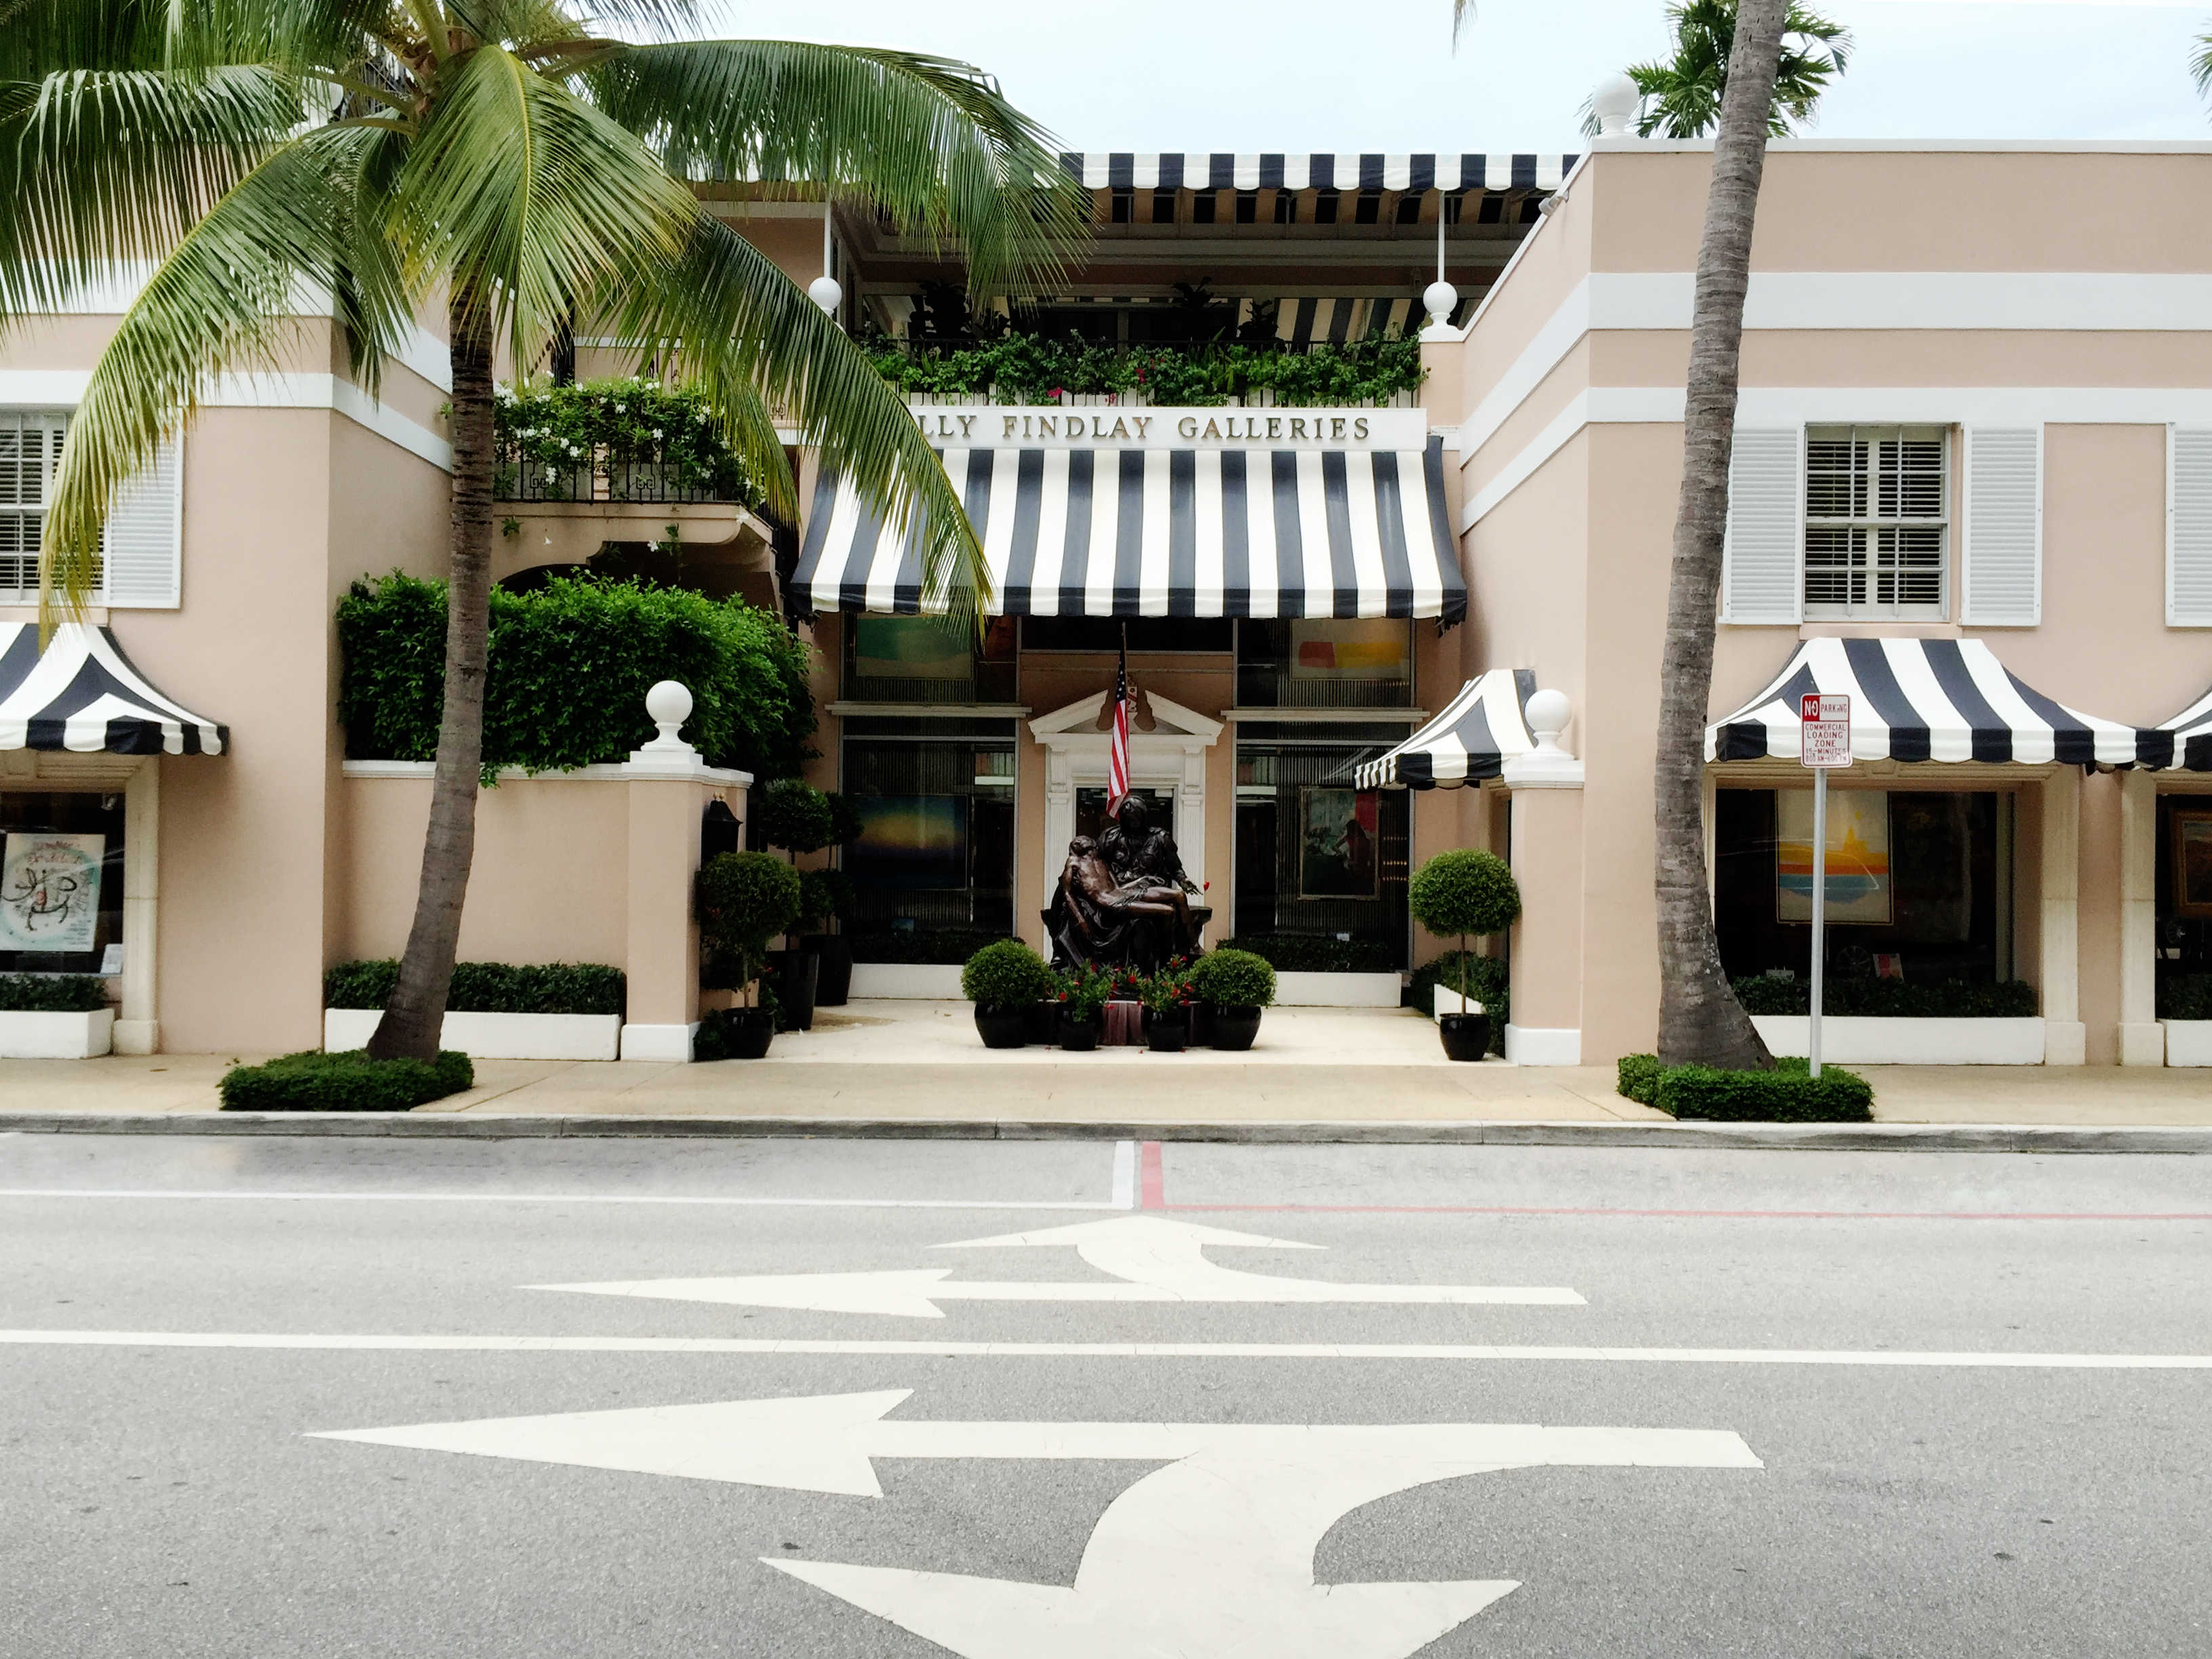 blk / white awning - worth ave - palm beach, fl - landscape design